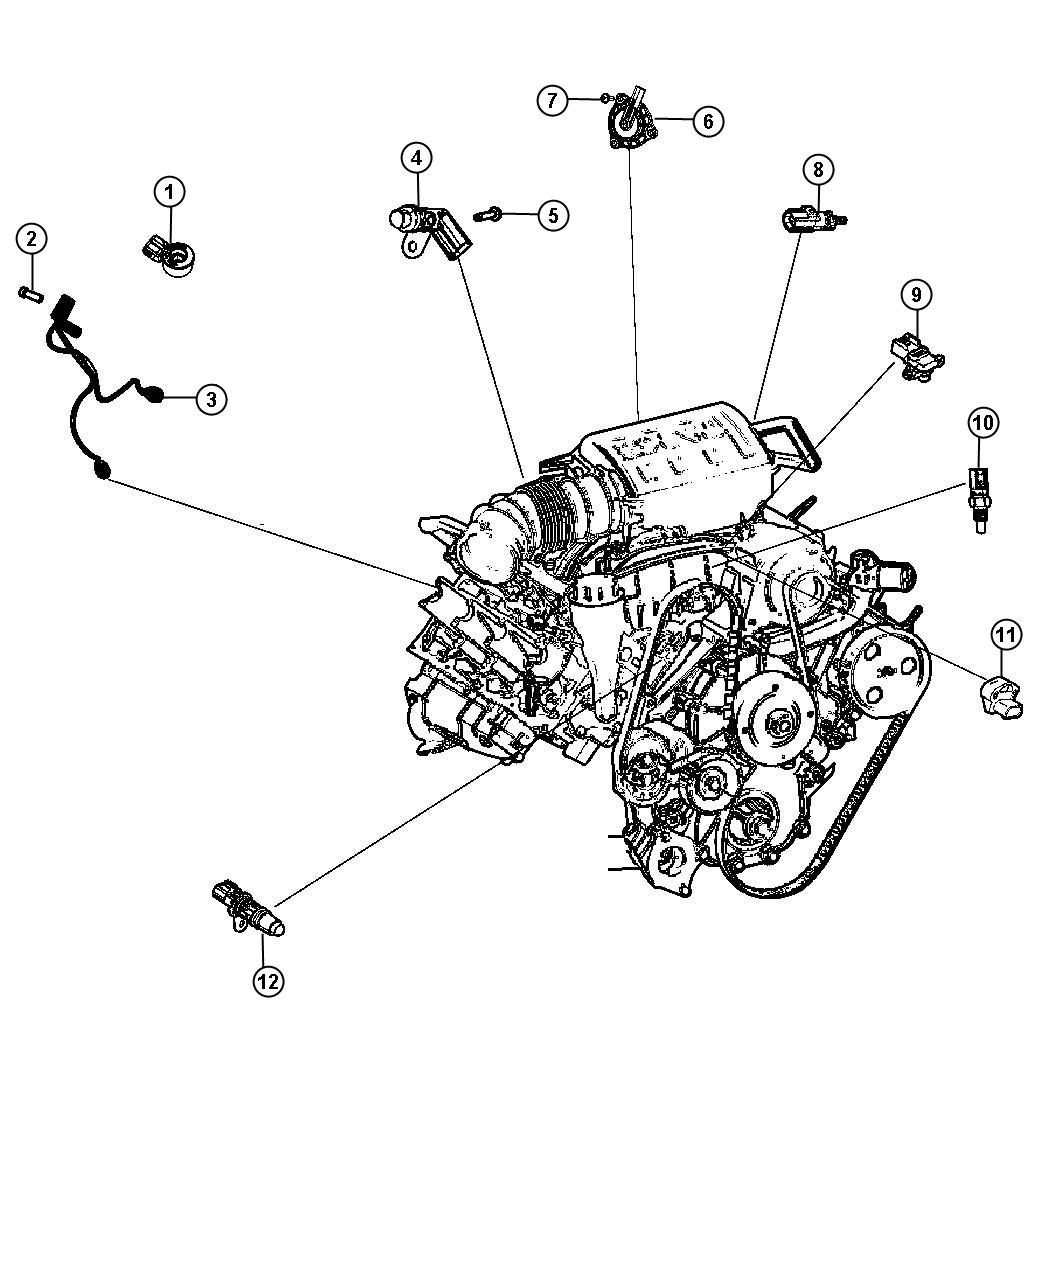 Chrysler 3 6l Vvt Engine Diagram